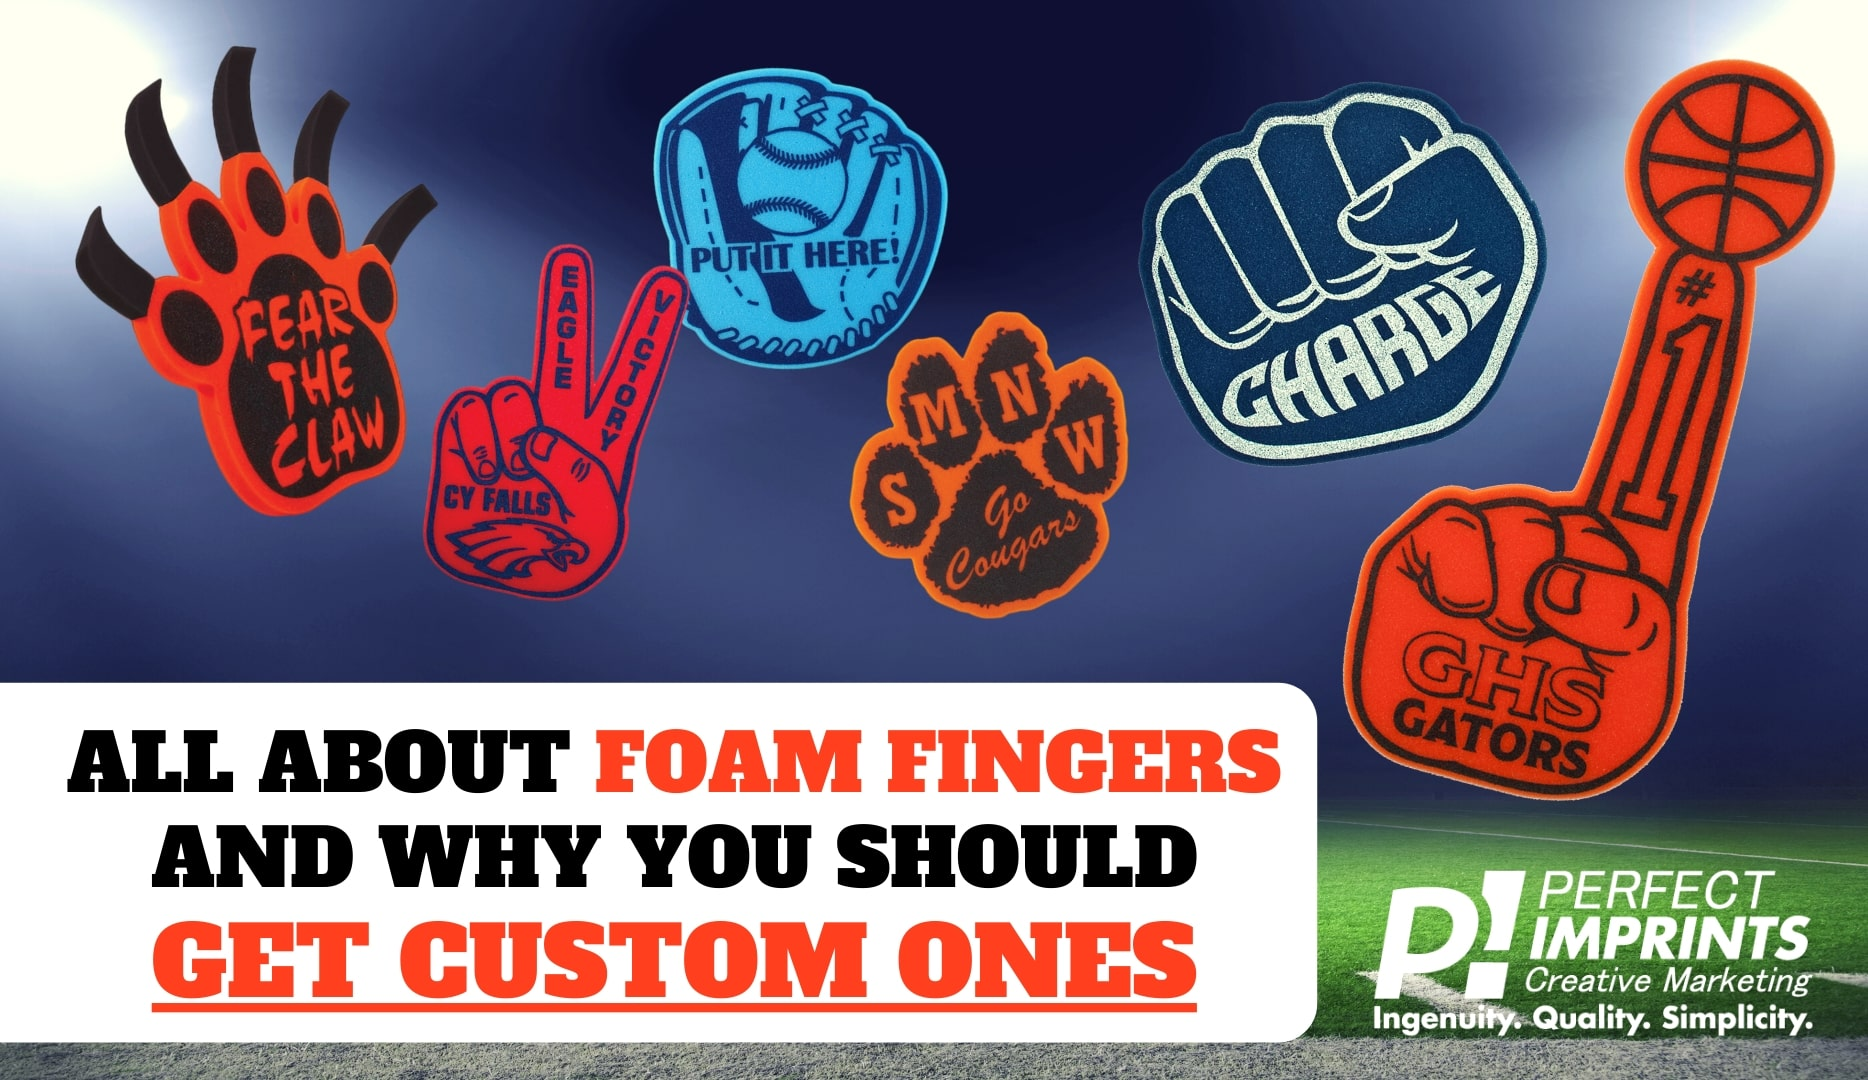 All About Custom Foam Fingers and Why You Should Get Them